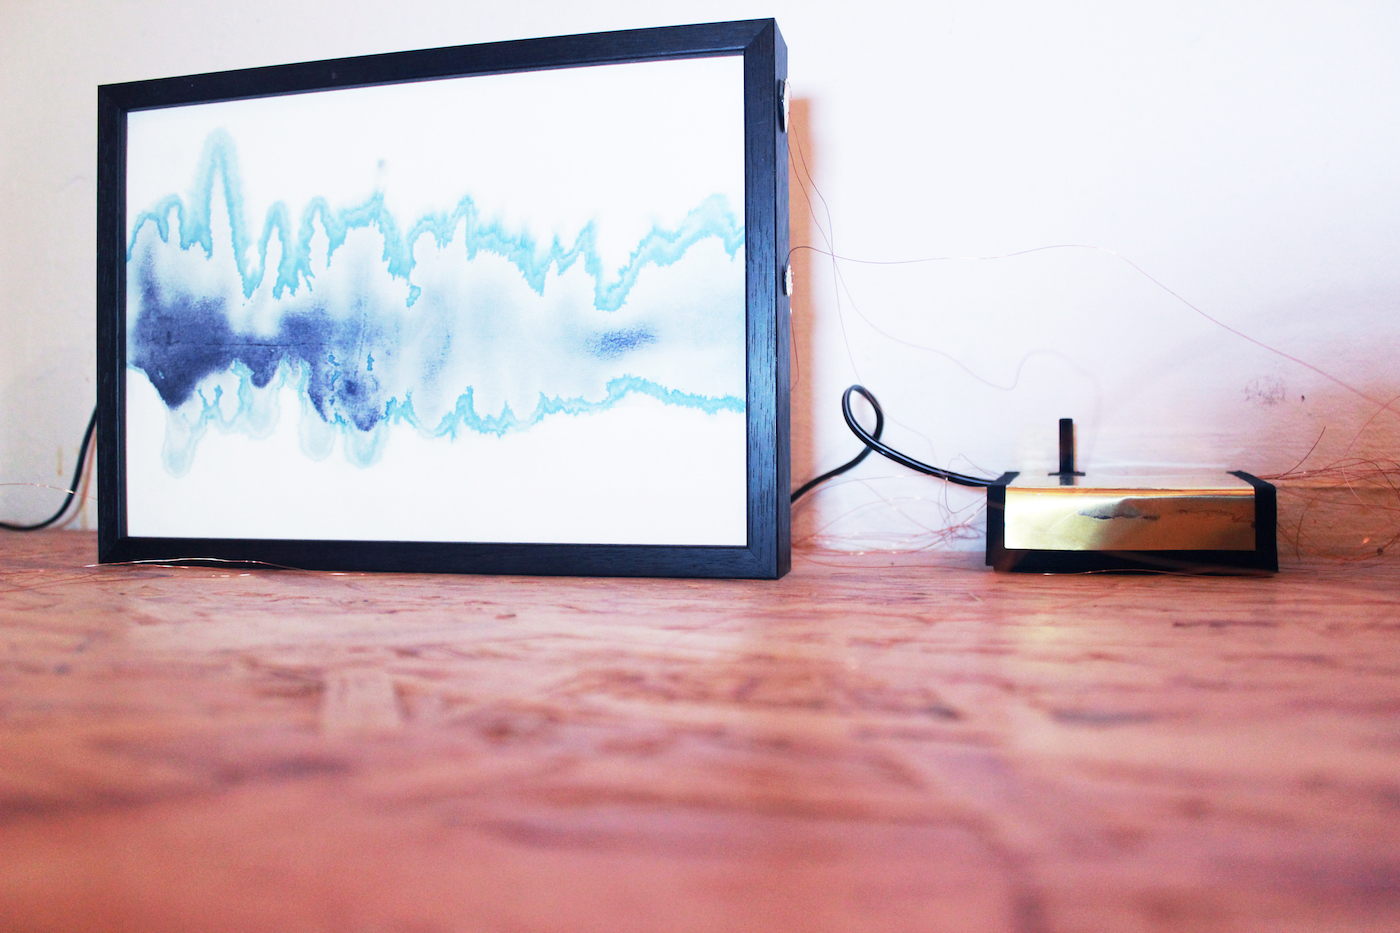 Juliana Herrero, Sonoides 5,2016 (27,3 x 18,8 cm x 4 cm) Mixed media sounding sculpture: microsound and watercolor blue print technique as synesthesia, copper wire, piezo's, electronic heart, sound on playback.